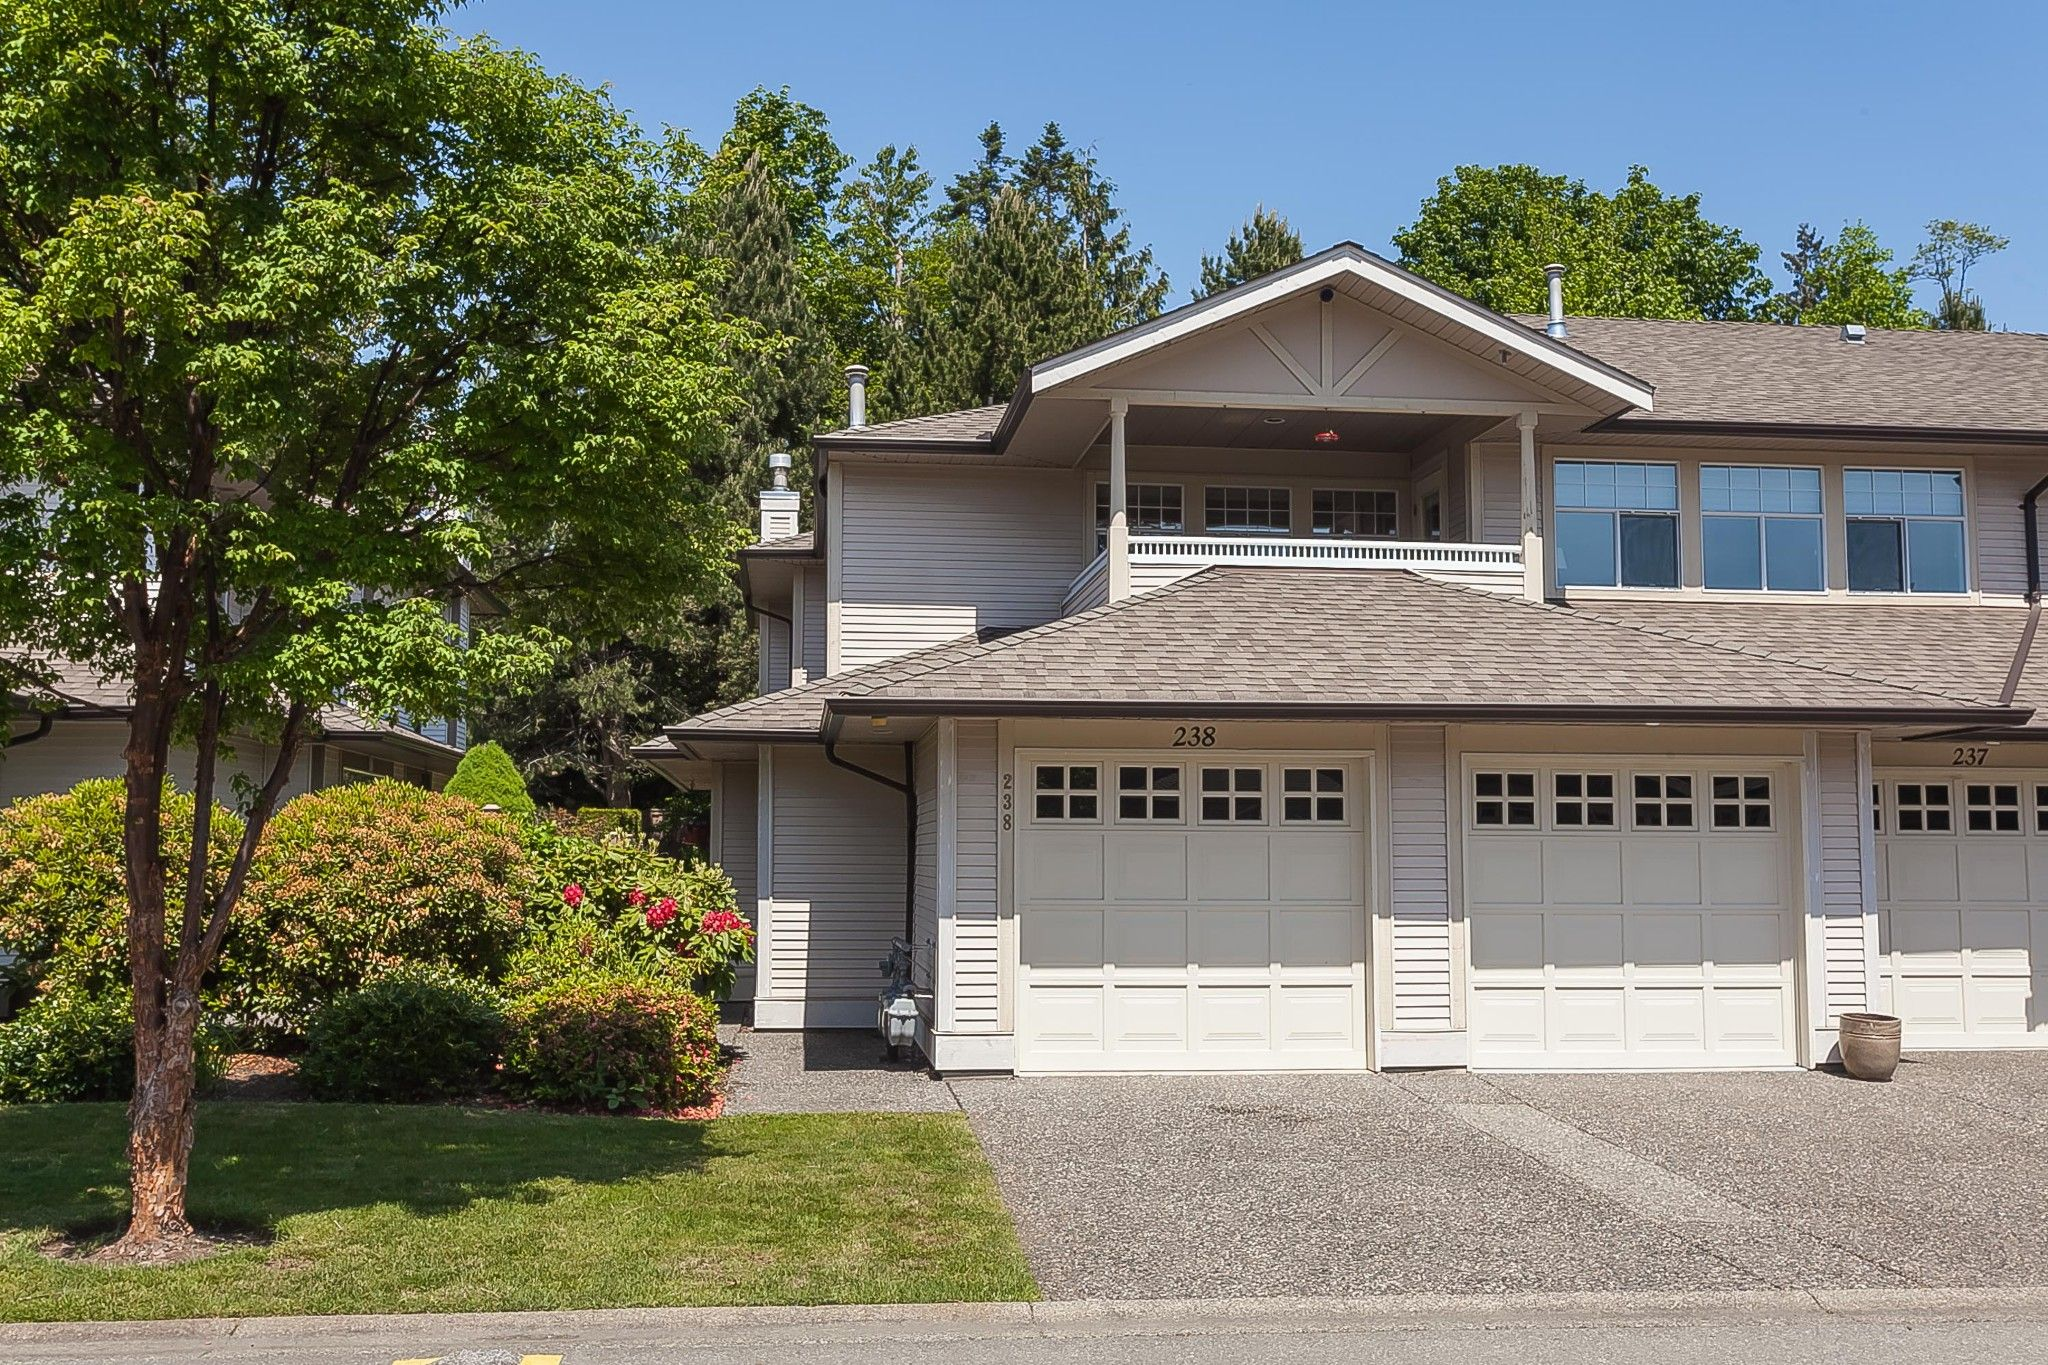 Main Photo: 238 20391 96 Avenue in Langley: Walnut Grove Townhouse for sale : MLS®# R2434121